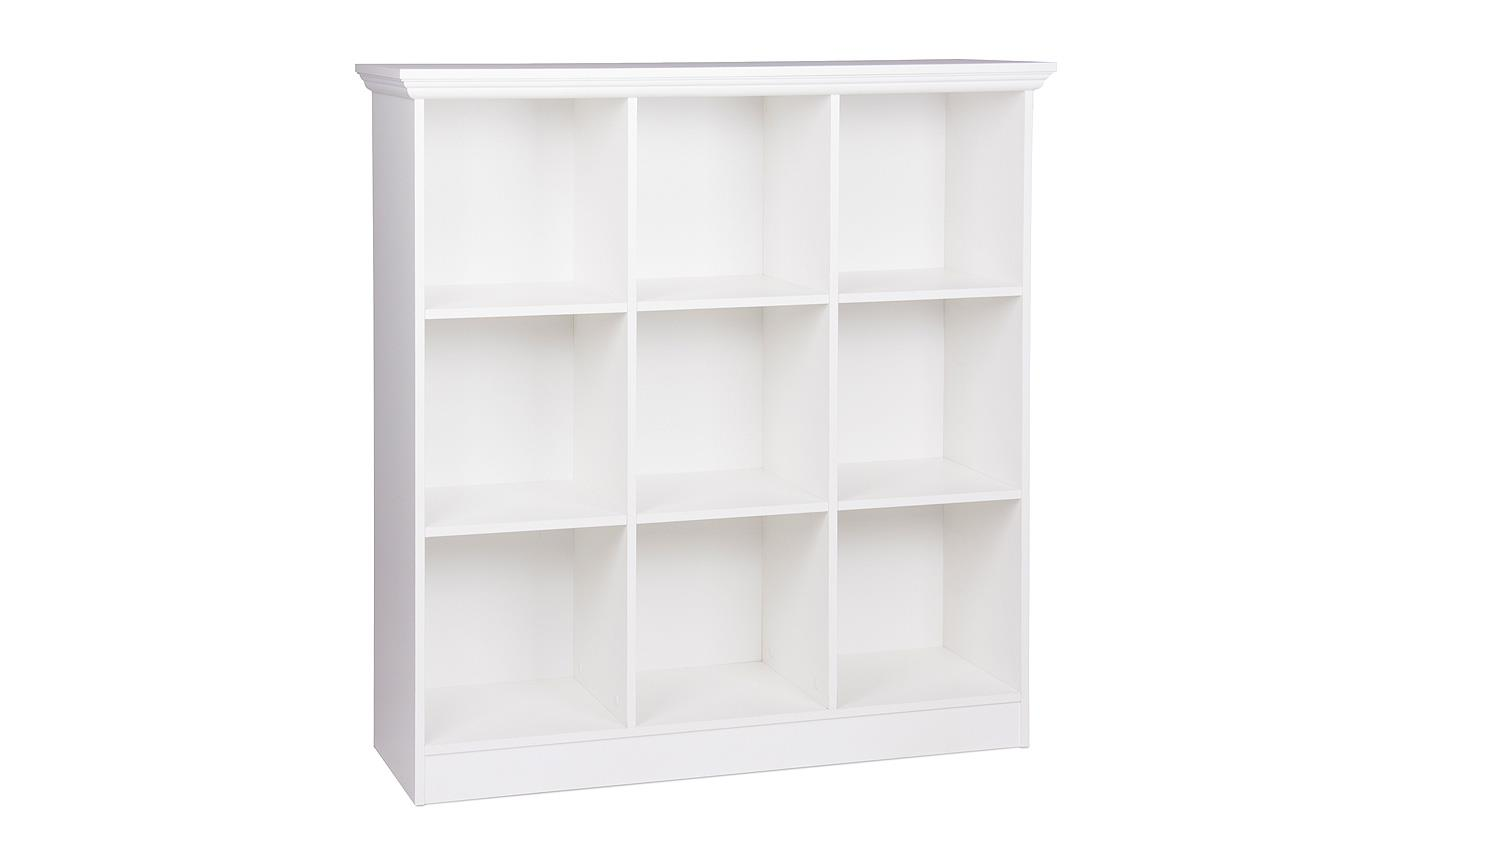 Bücherregal Landhausstil Weiß Regal Landwood Bücherregal In Weiß Mit 9 Fächern 110 Cm